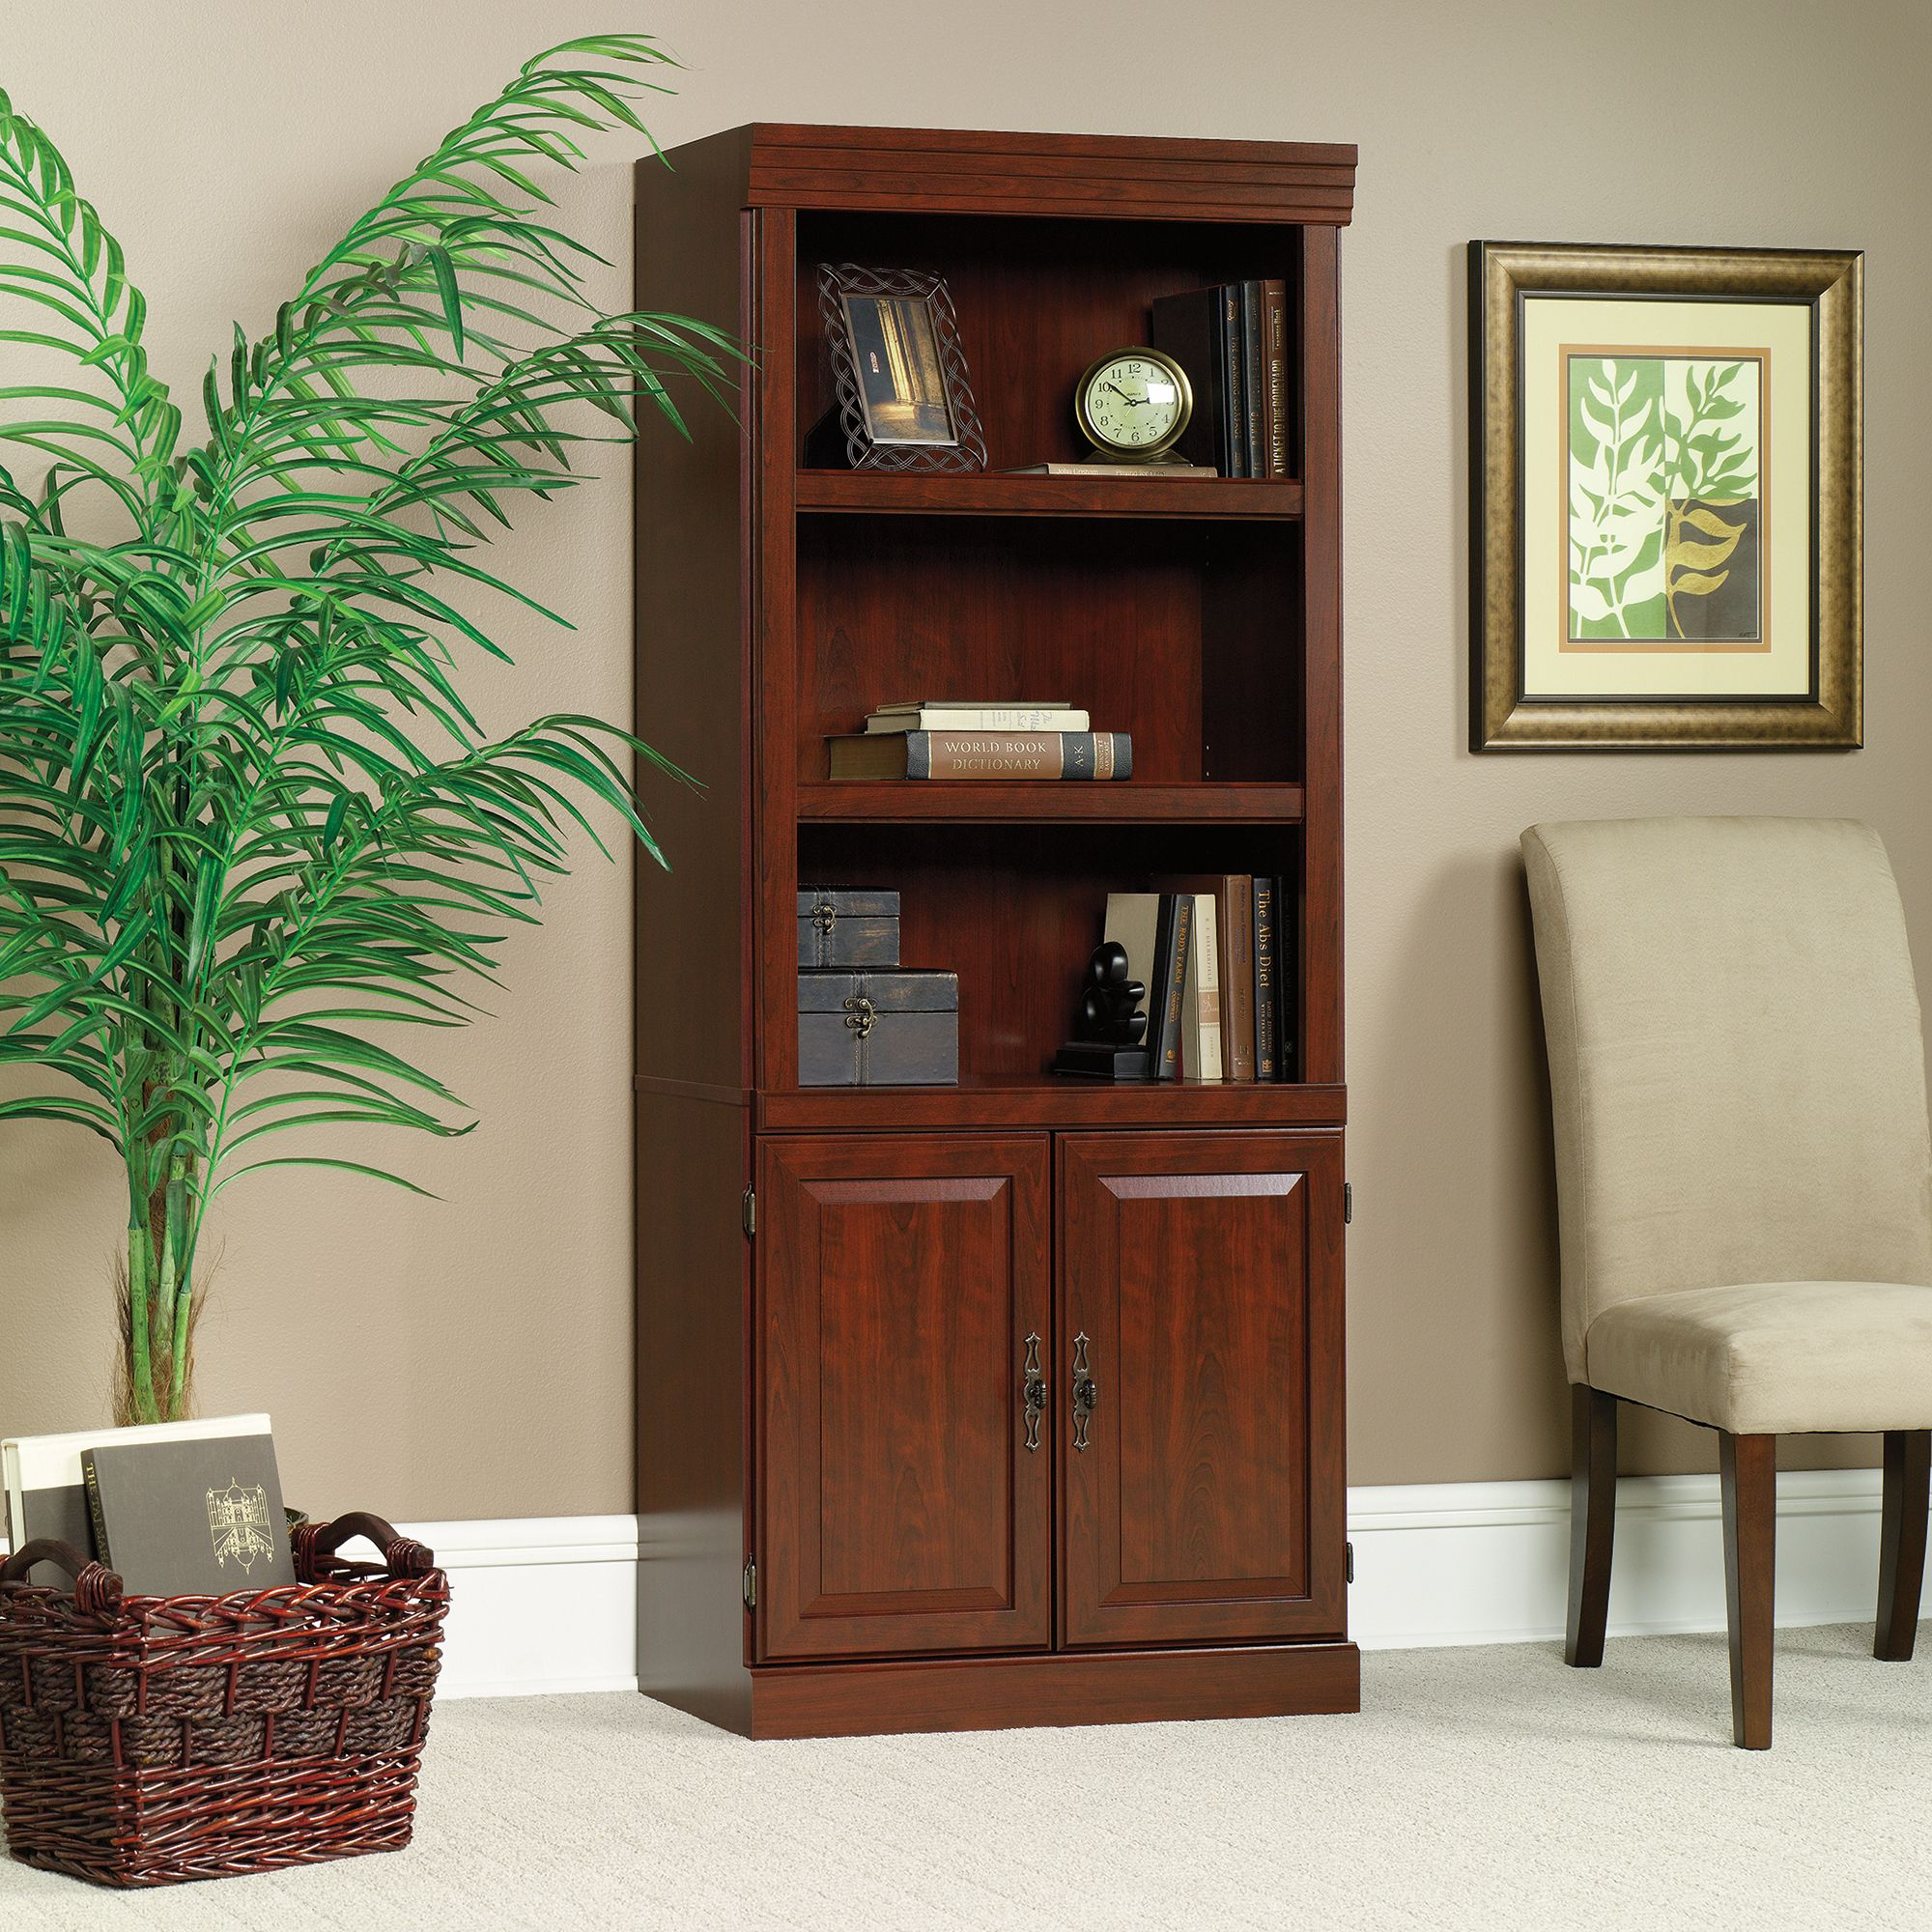 Sauder Cherry Bookcase Best Way to